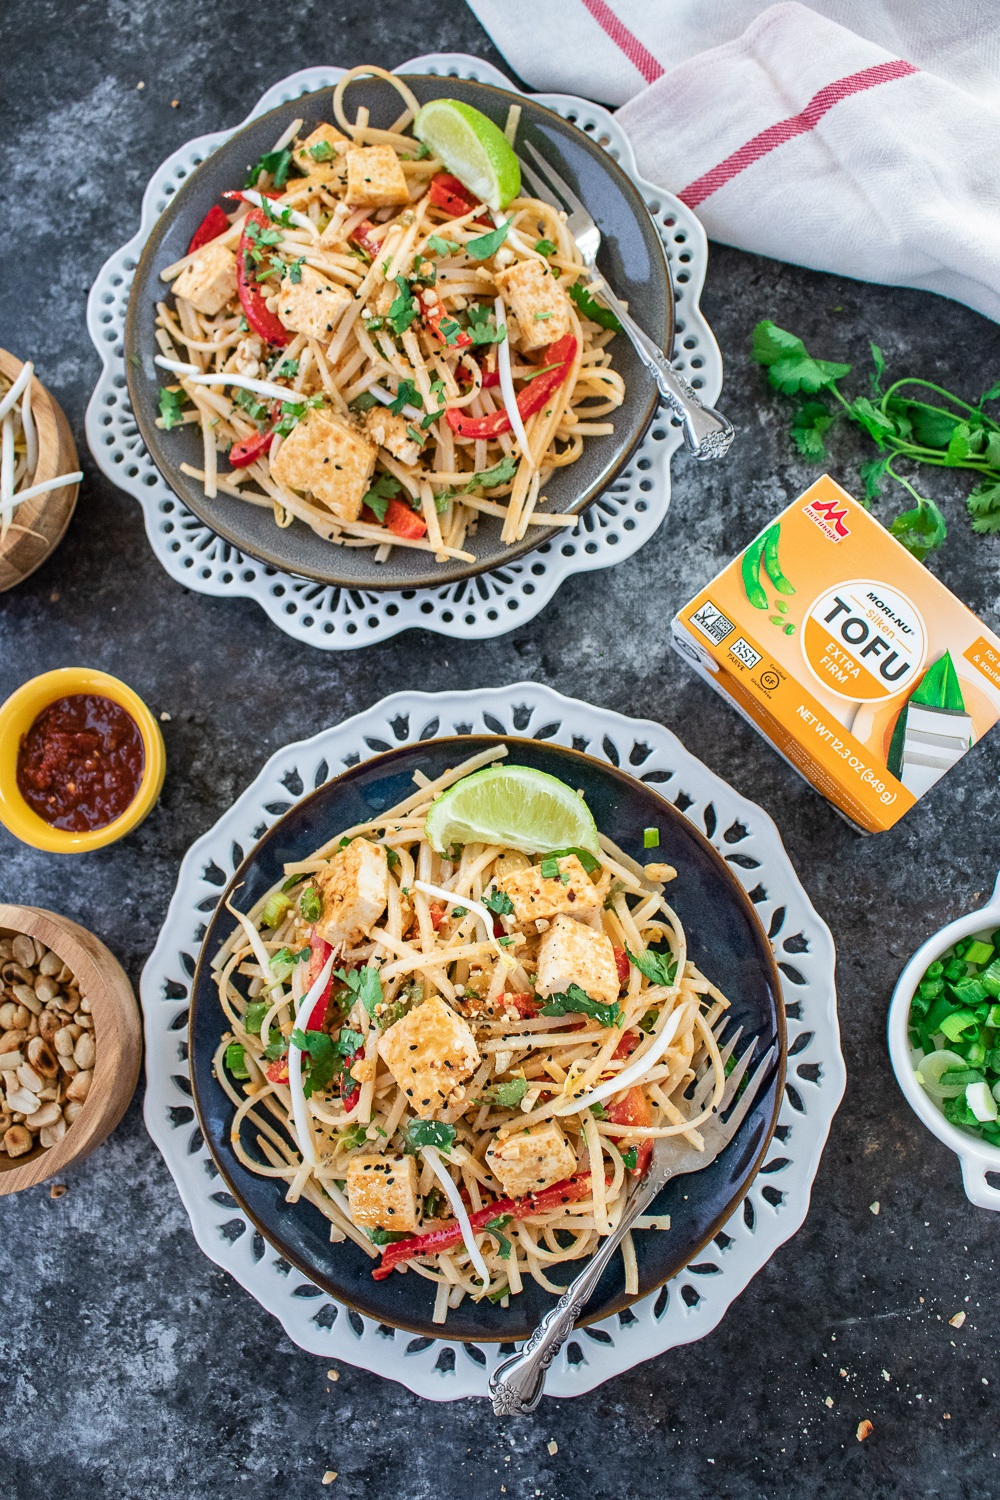 Vegan Pad Thai noodles with peanuts, chili sauce, and scallions